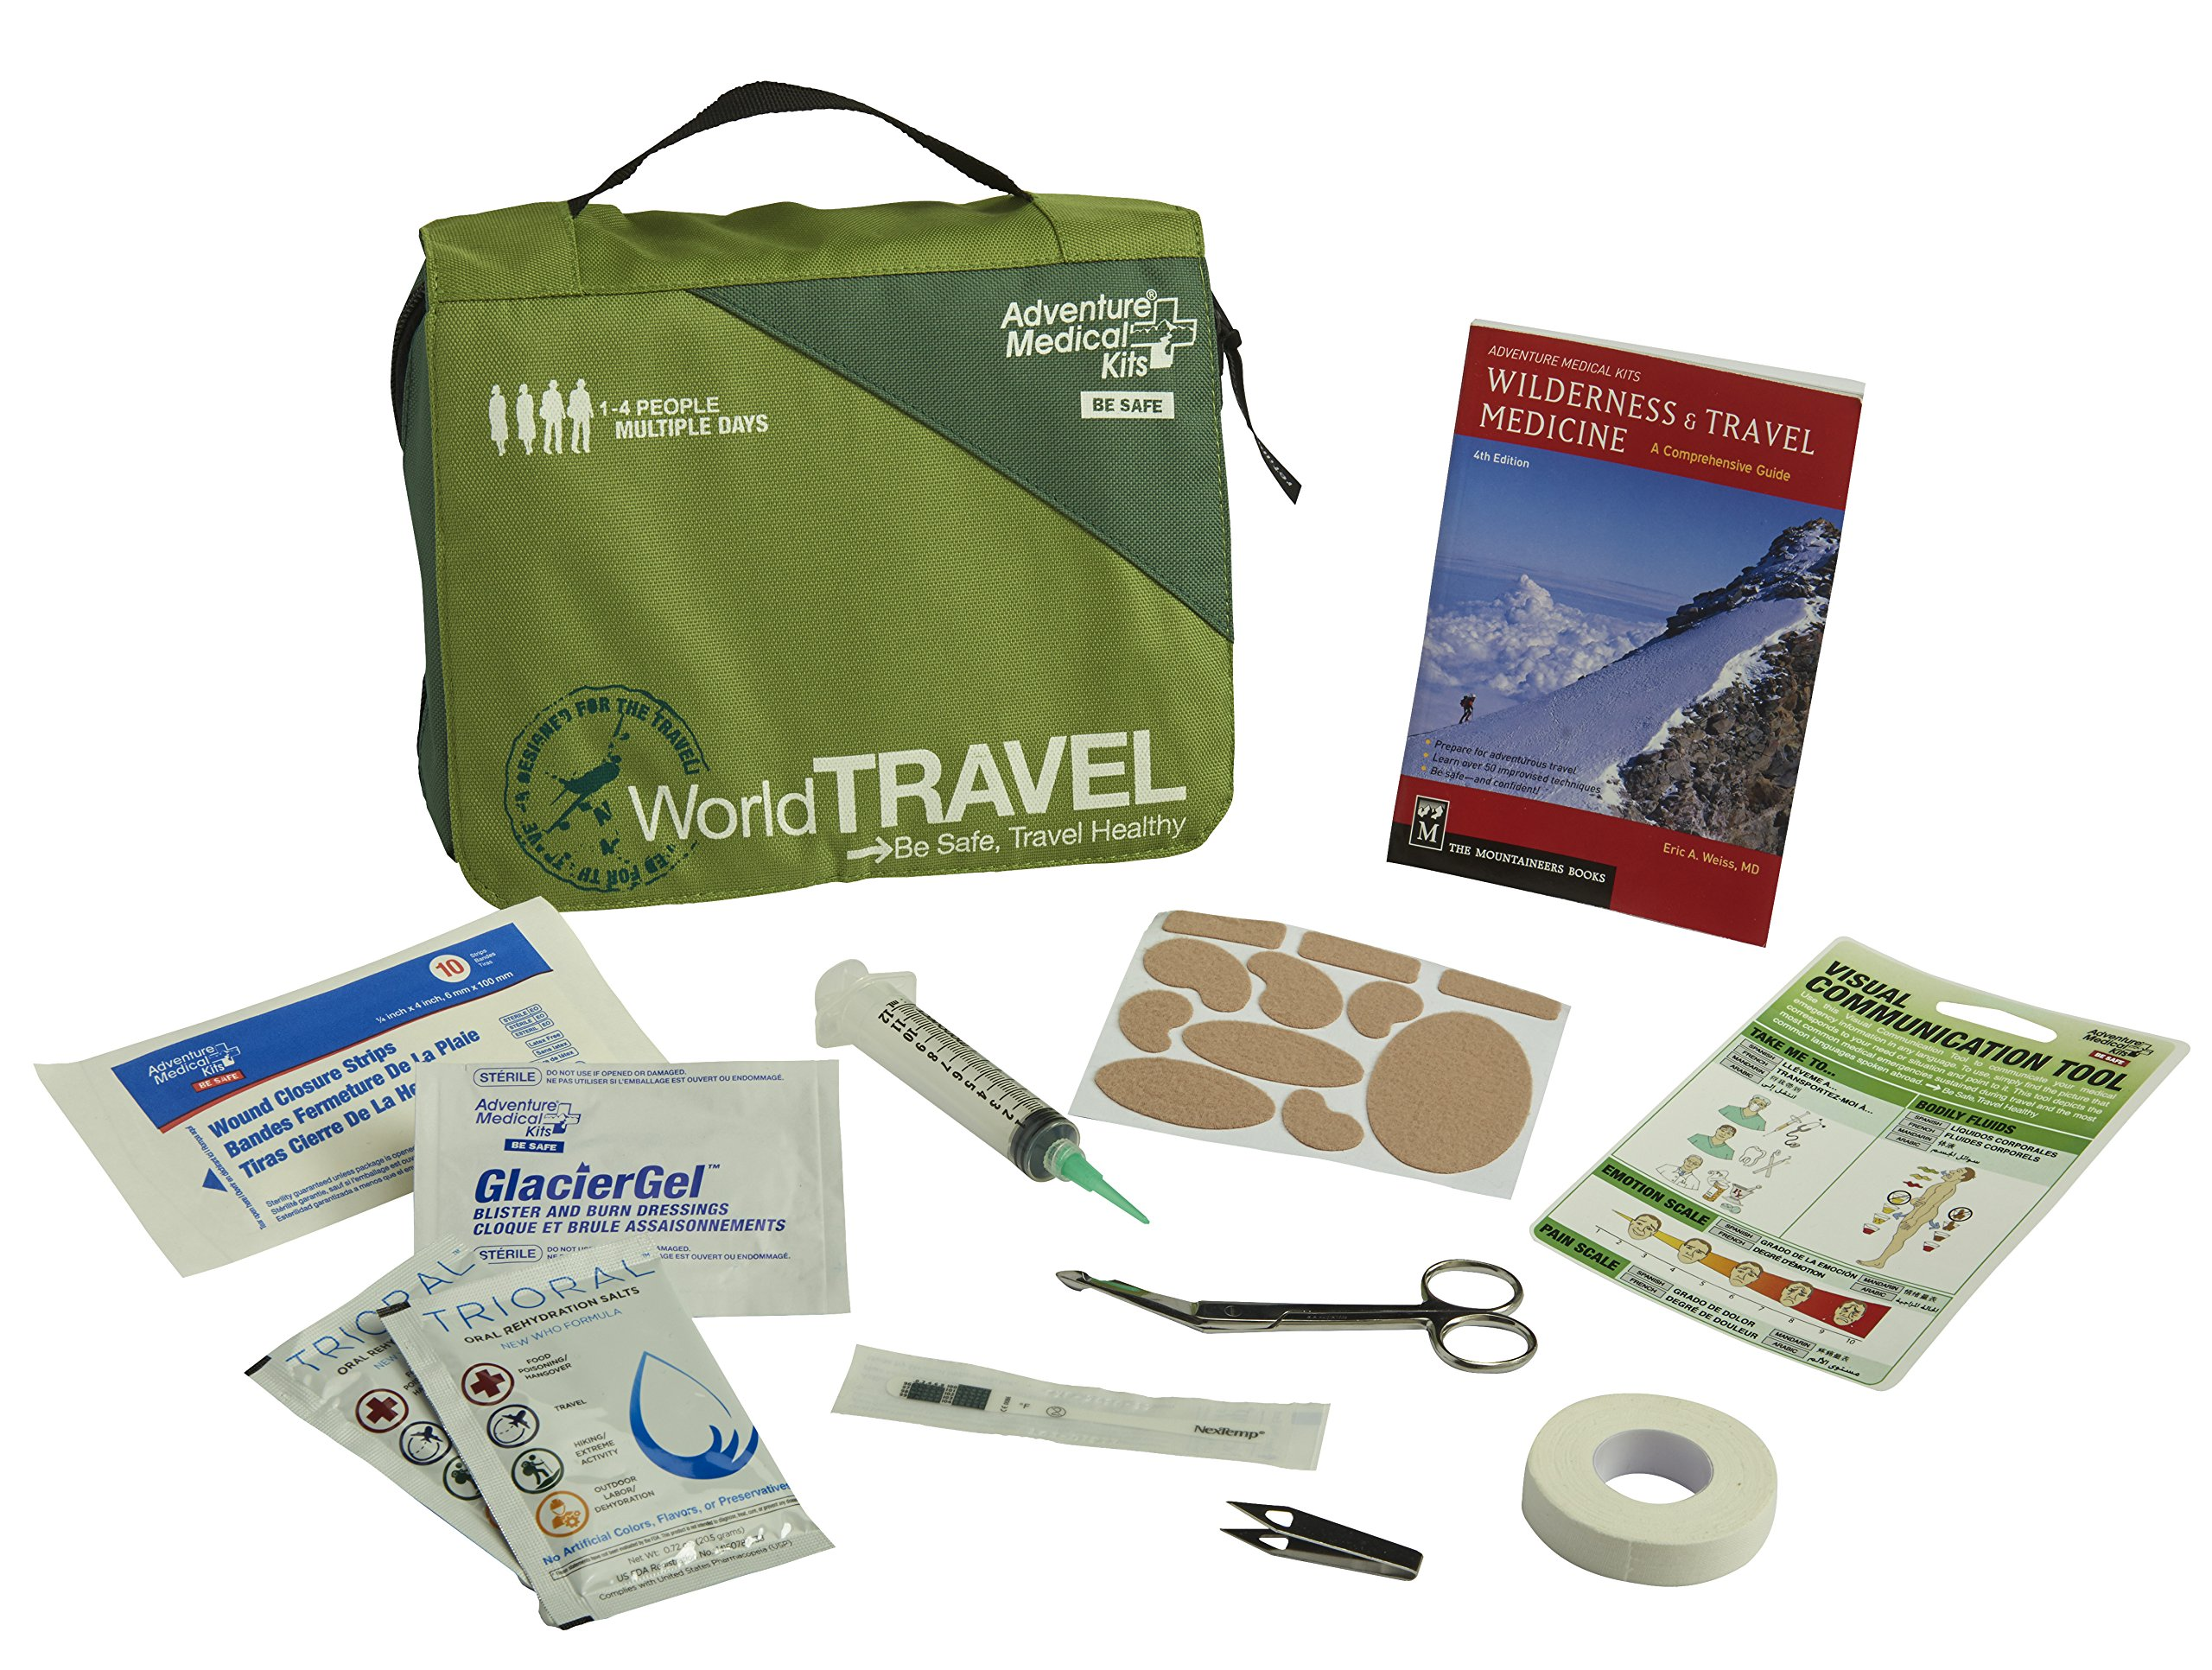 Adventure Medical Kits World Travel First Aid Kit, Adventure Air Travel, Third World Protection, Comprehensive Guide, Visual Communication Tool, 311 Travel Bag, Easy Care, Durable Case, 1lb 8oz